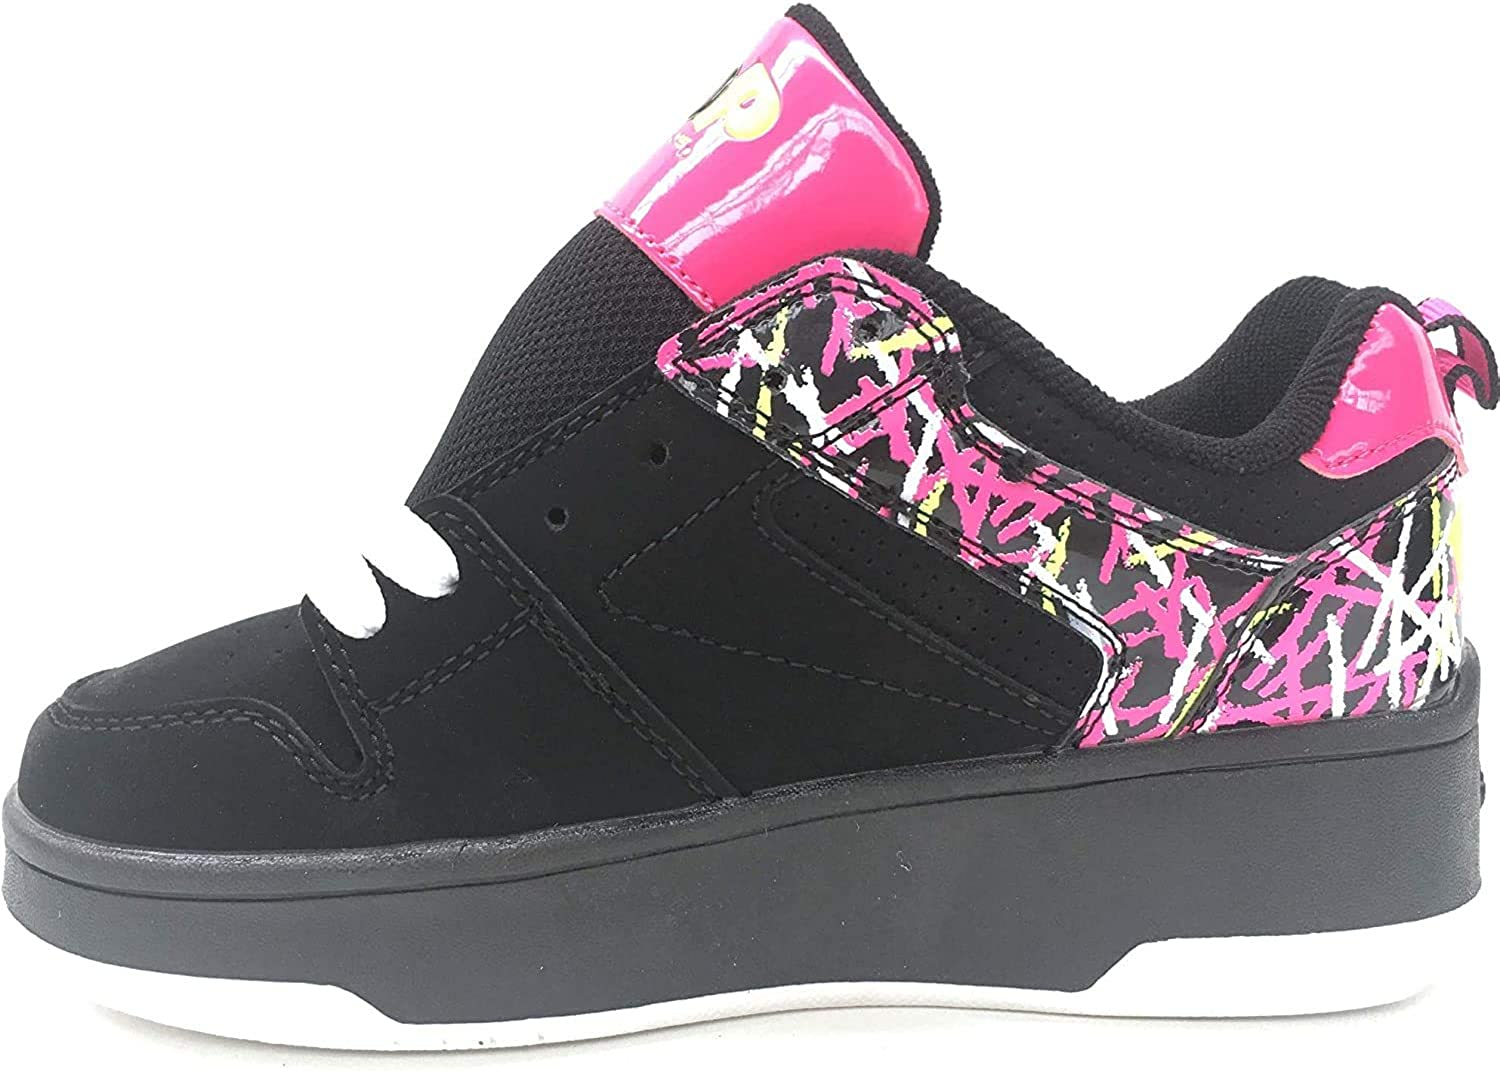 HEELYS POP Push Button Wheeled Girls Boys 4 years warranty Outlet SALE Trainers and for